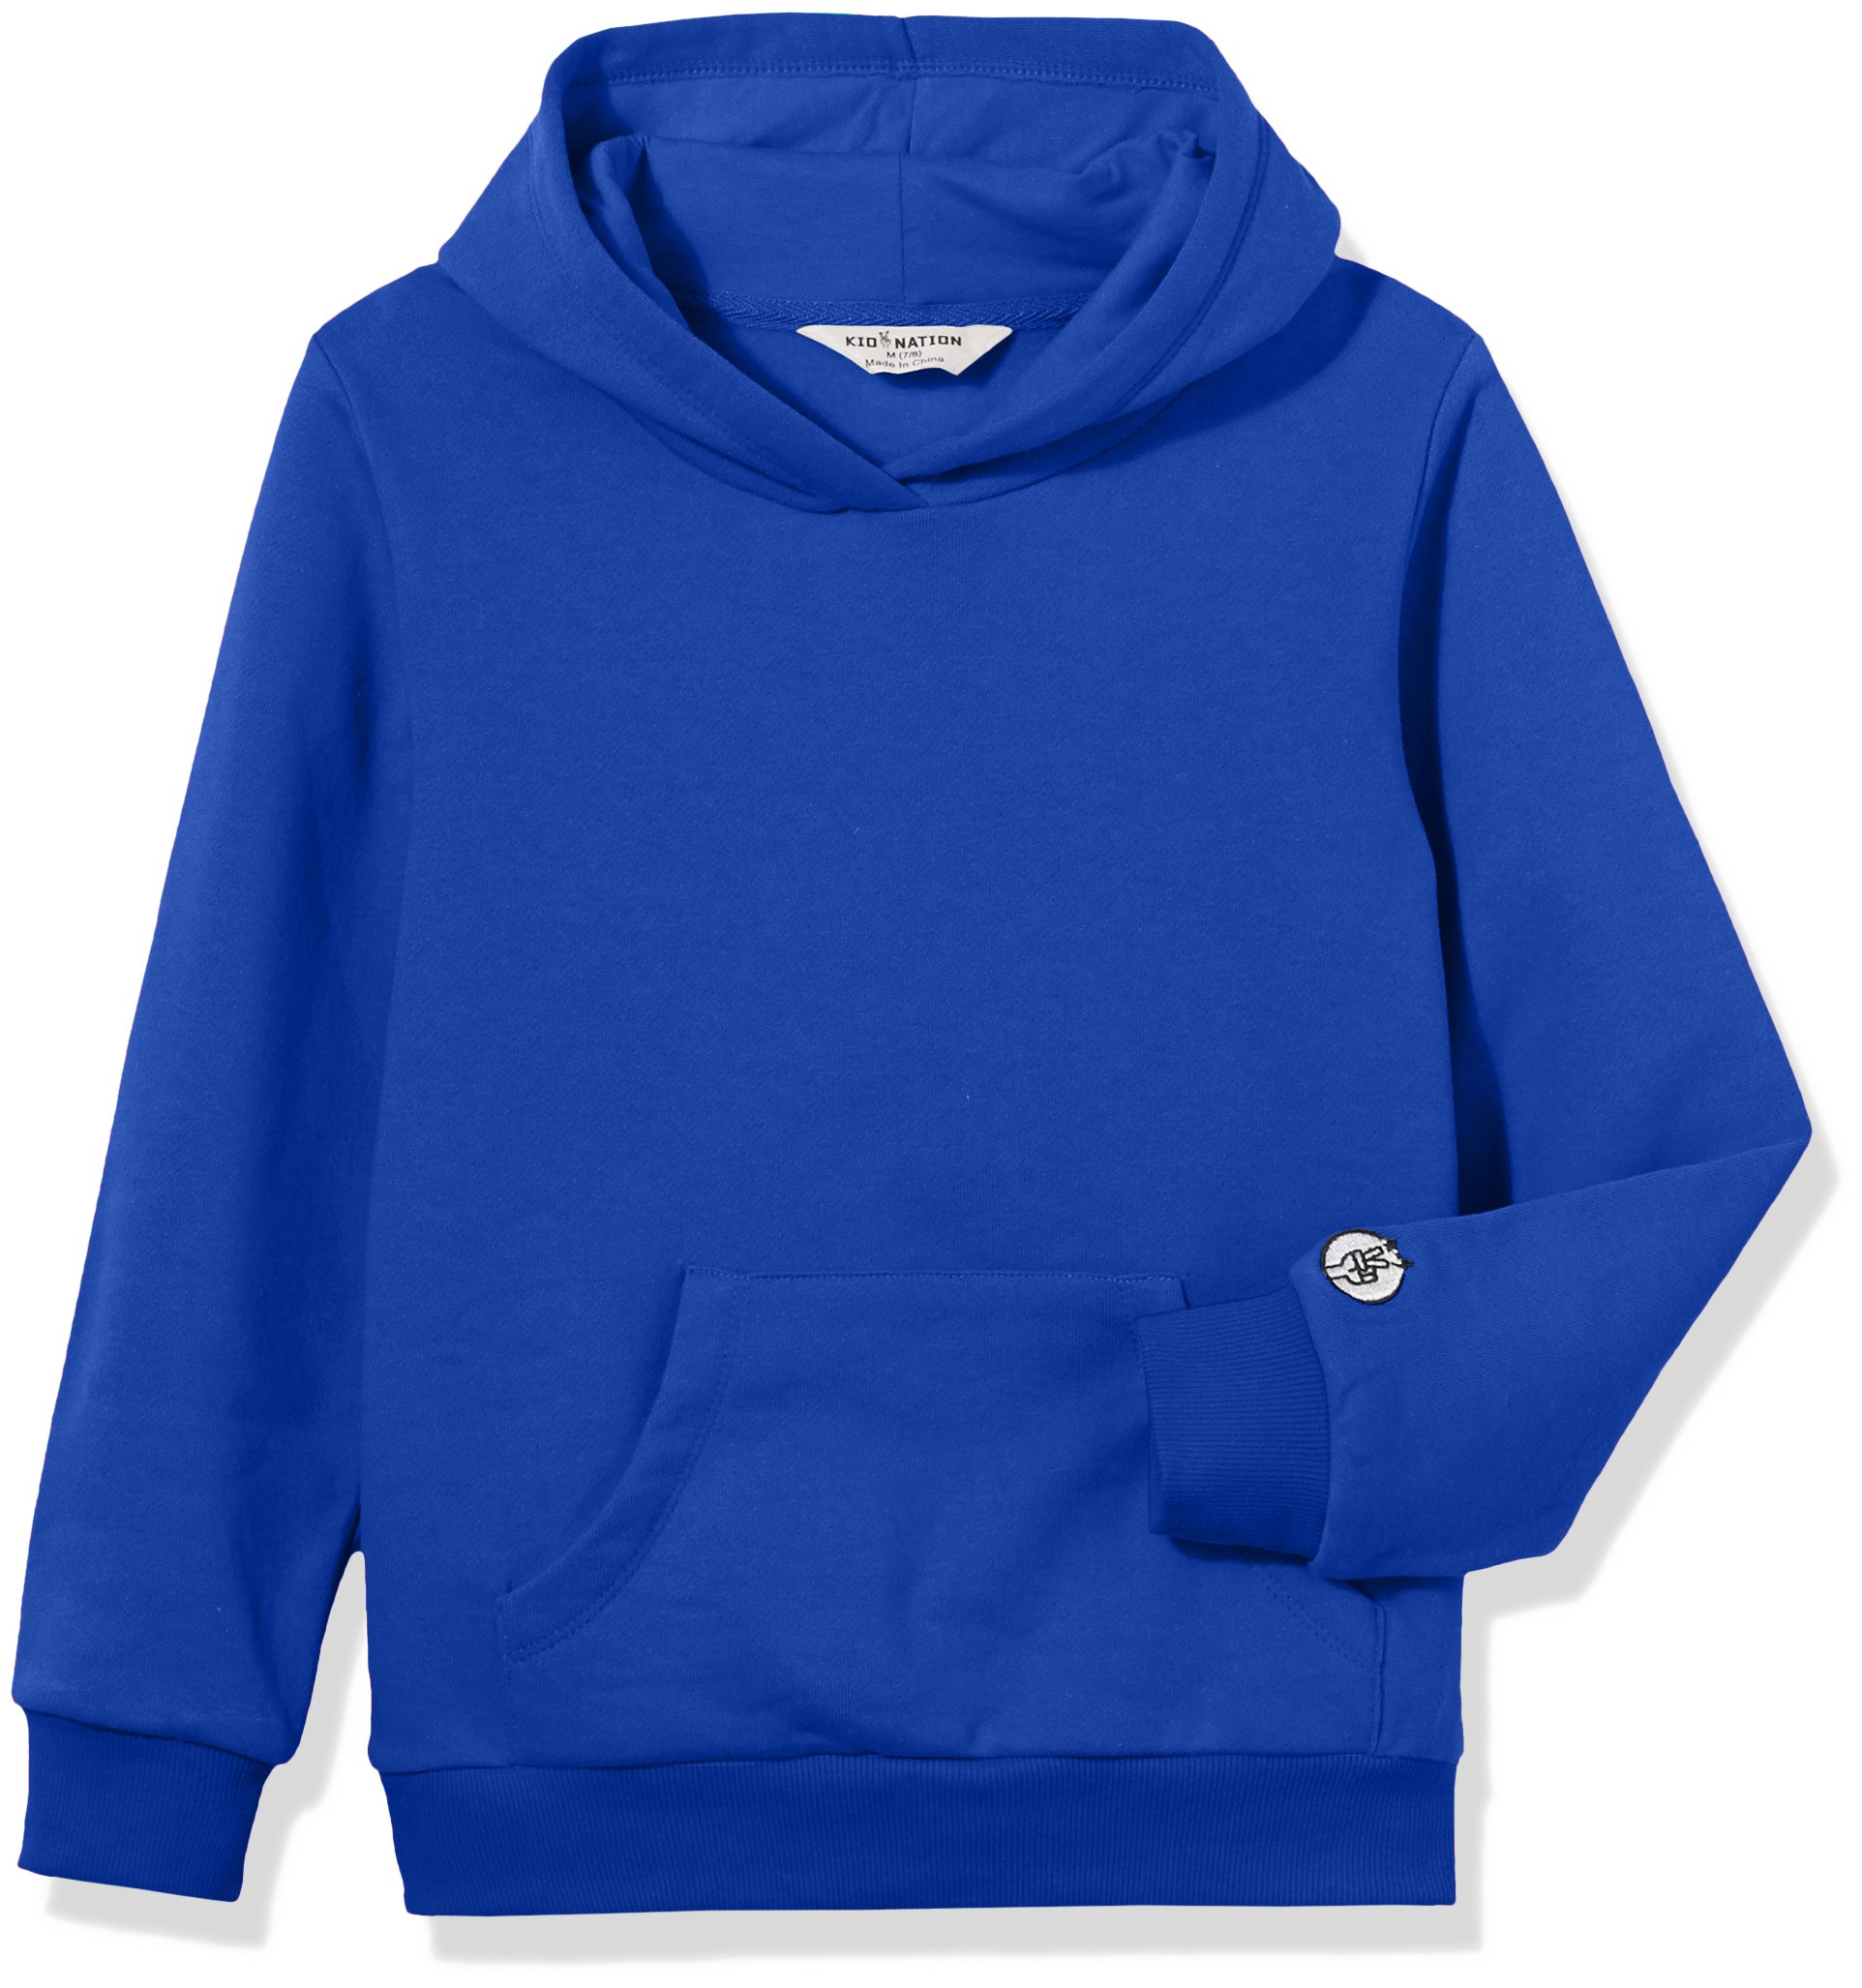 Kid Nation Kids' Solid Fleece Hooded Pullover Sweatshirt for Boys Or Girls S Blue 01